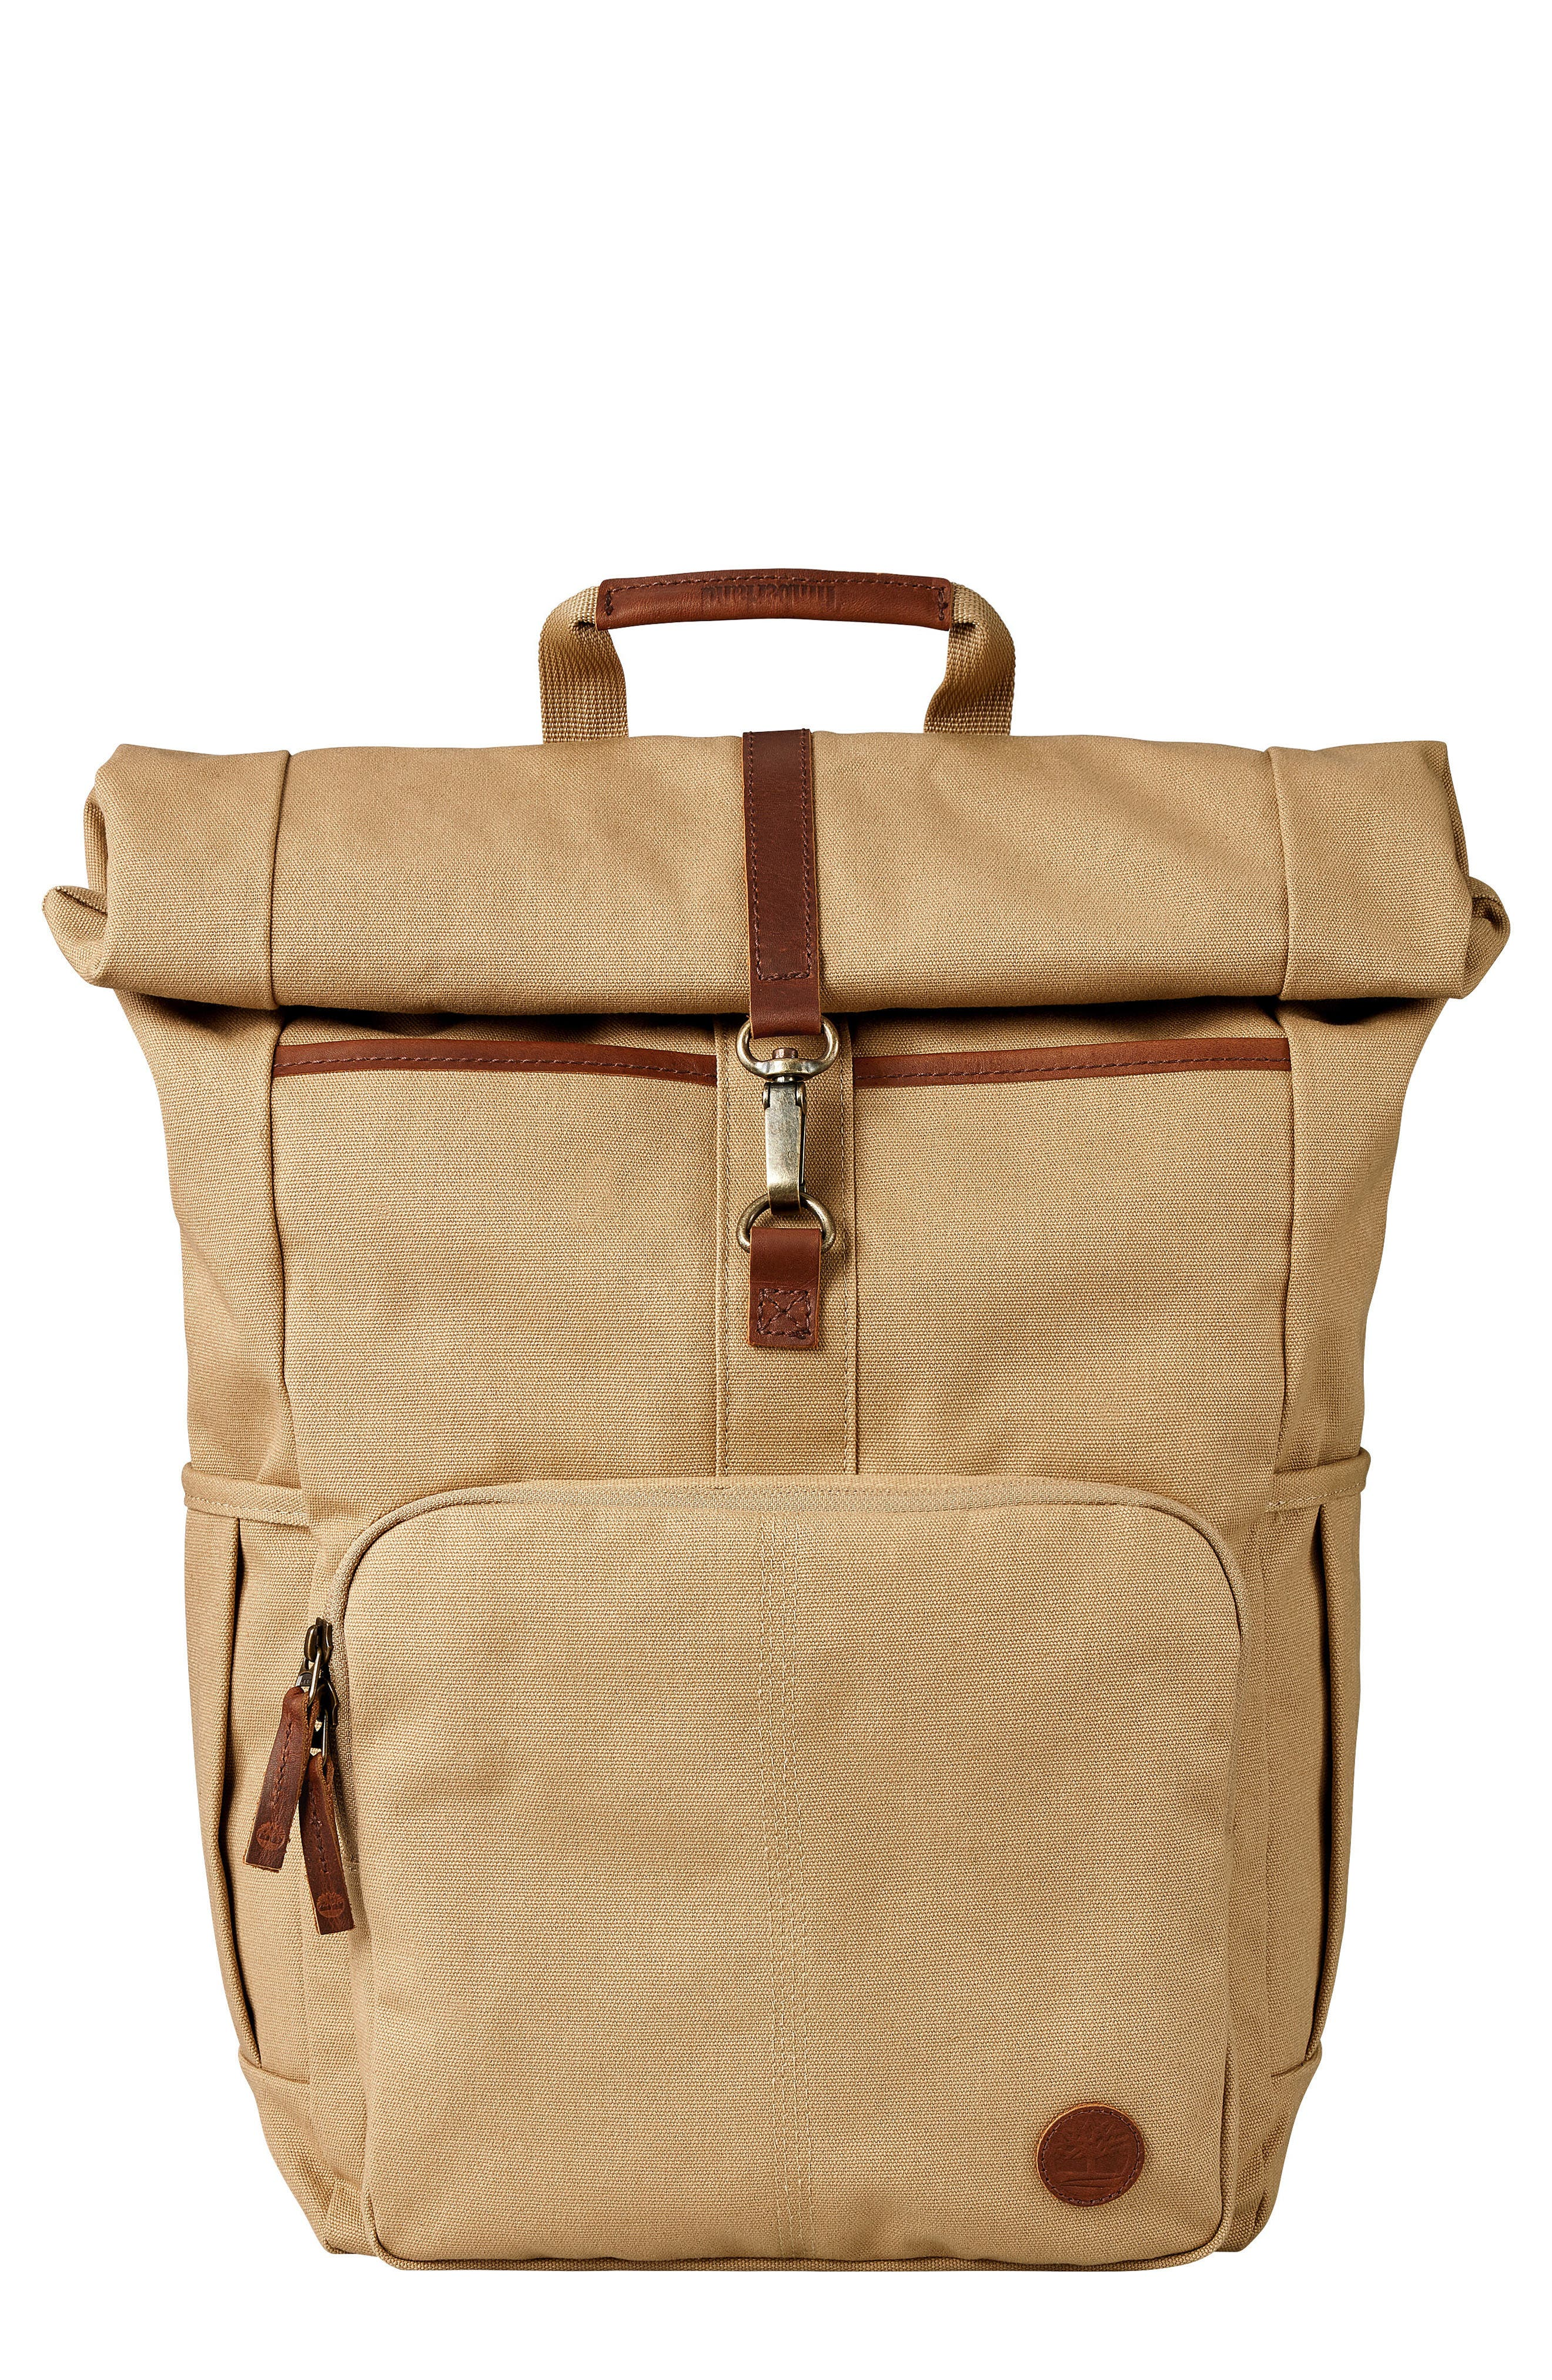 Walnut Hill Rolltop Backpack,                             Main thumbnail 3, color,